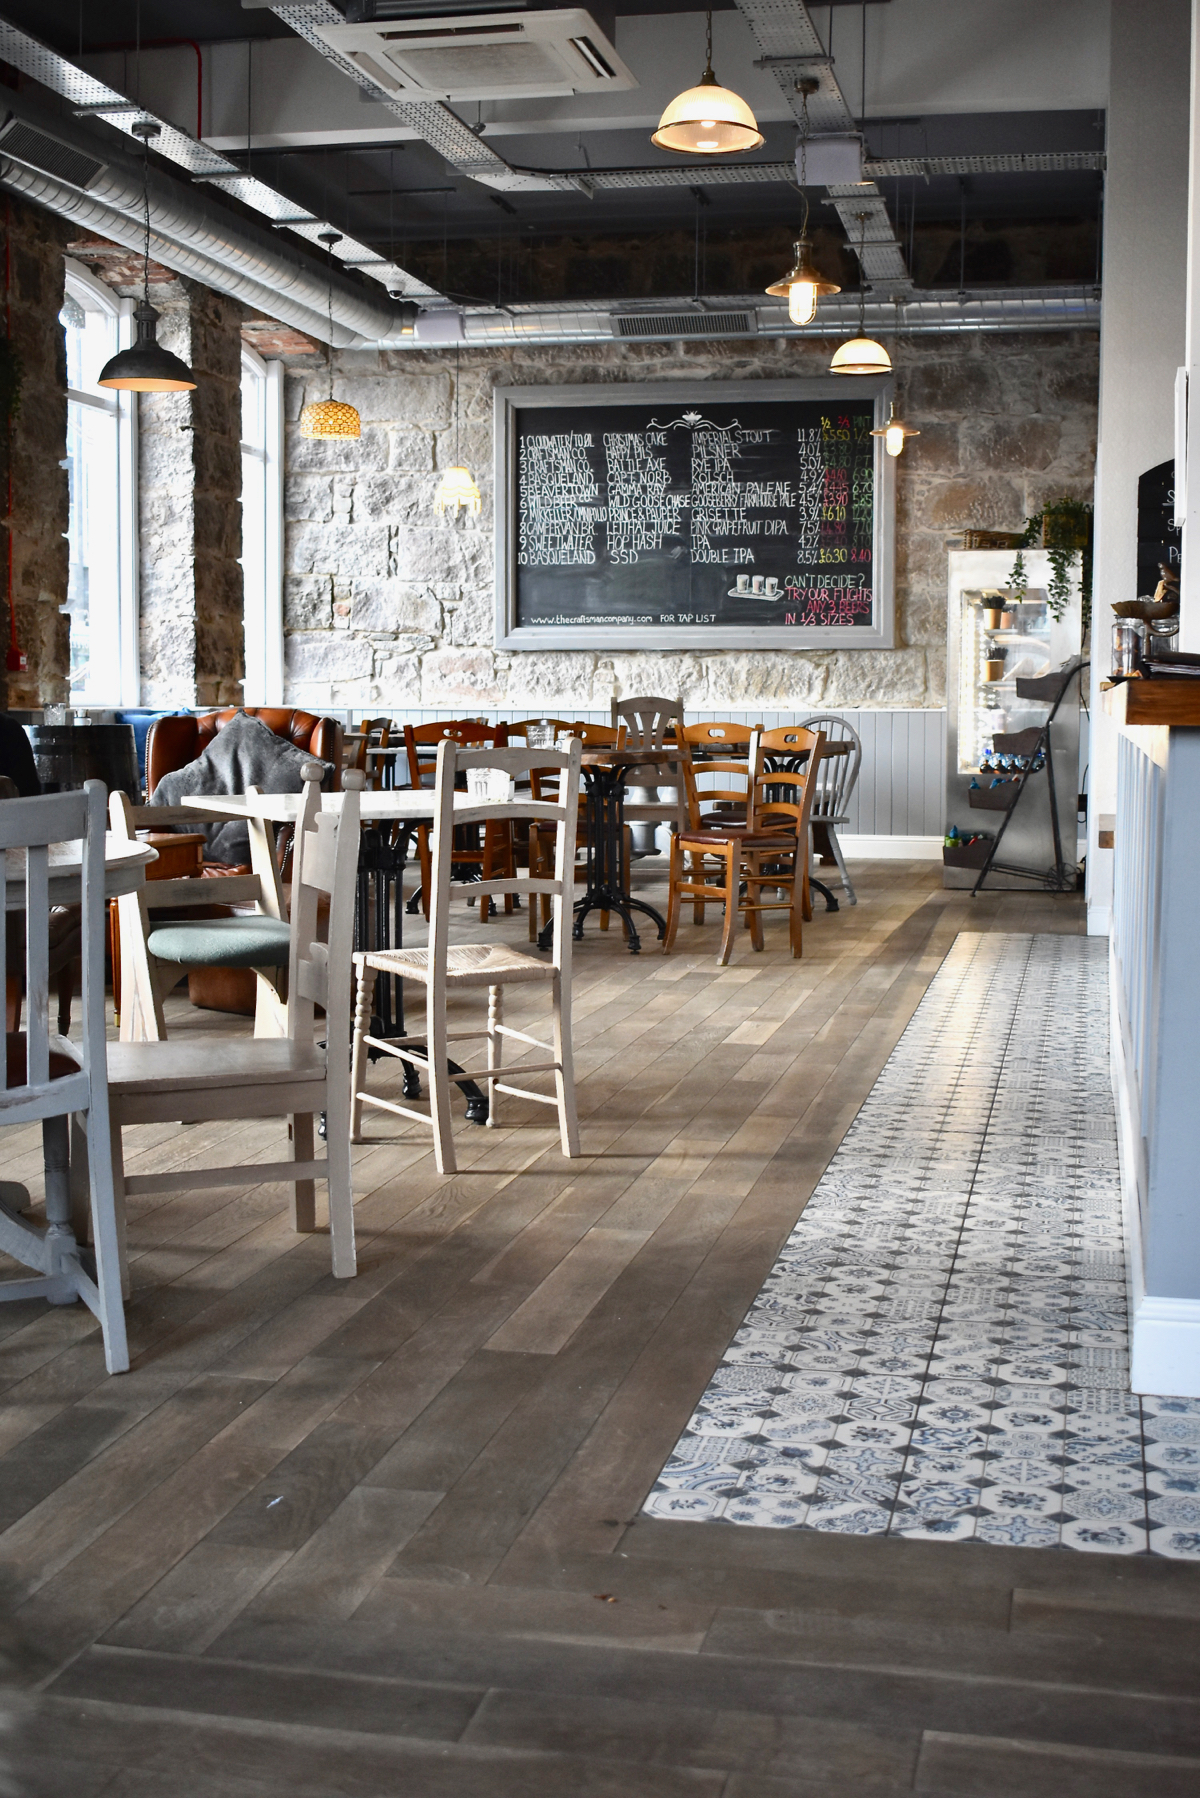 Home away stay happy at jurys inn cork aberdeen spon our highlights of the food side of the city include melt the citys first dedicated cheese toastie cafe opened by self described toastie queen mechelle dailygadgetfo Images